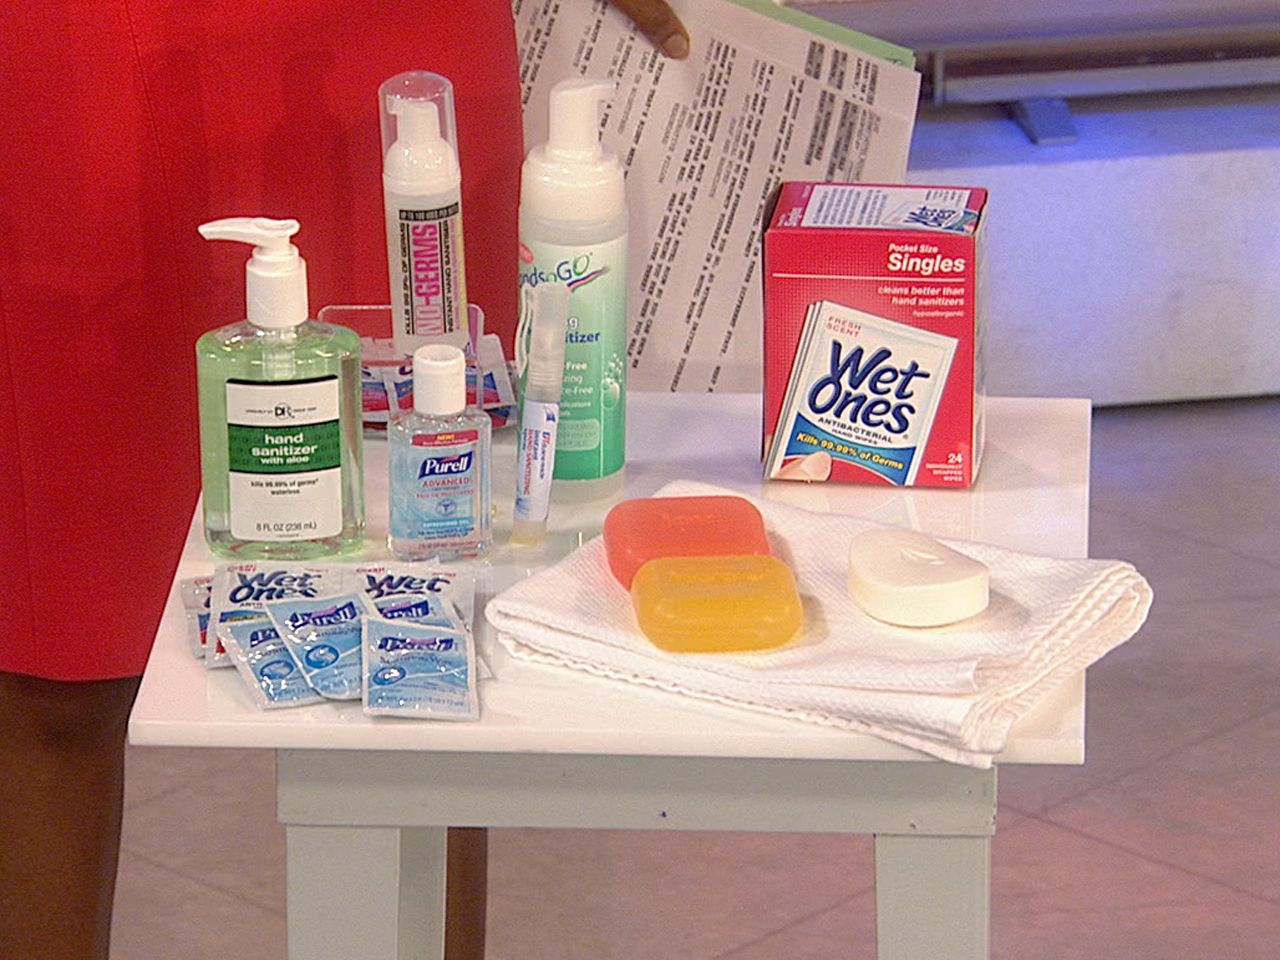 Protecting yourself from hotel room germs